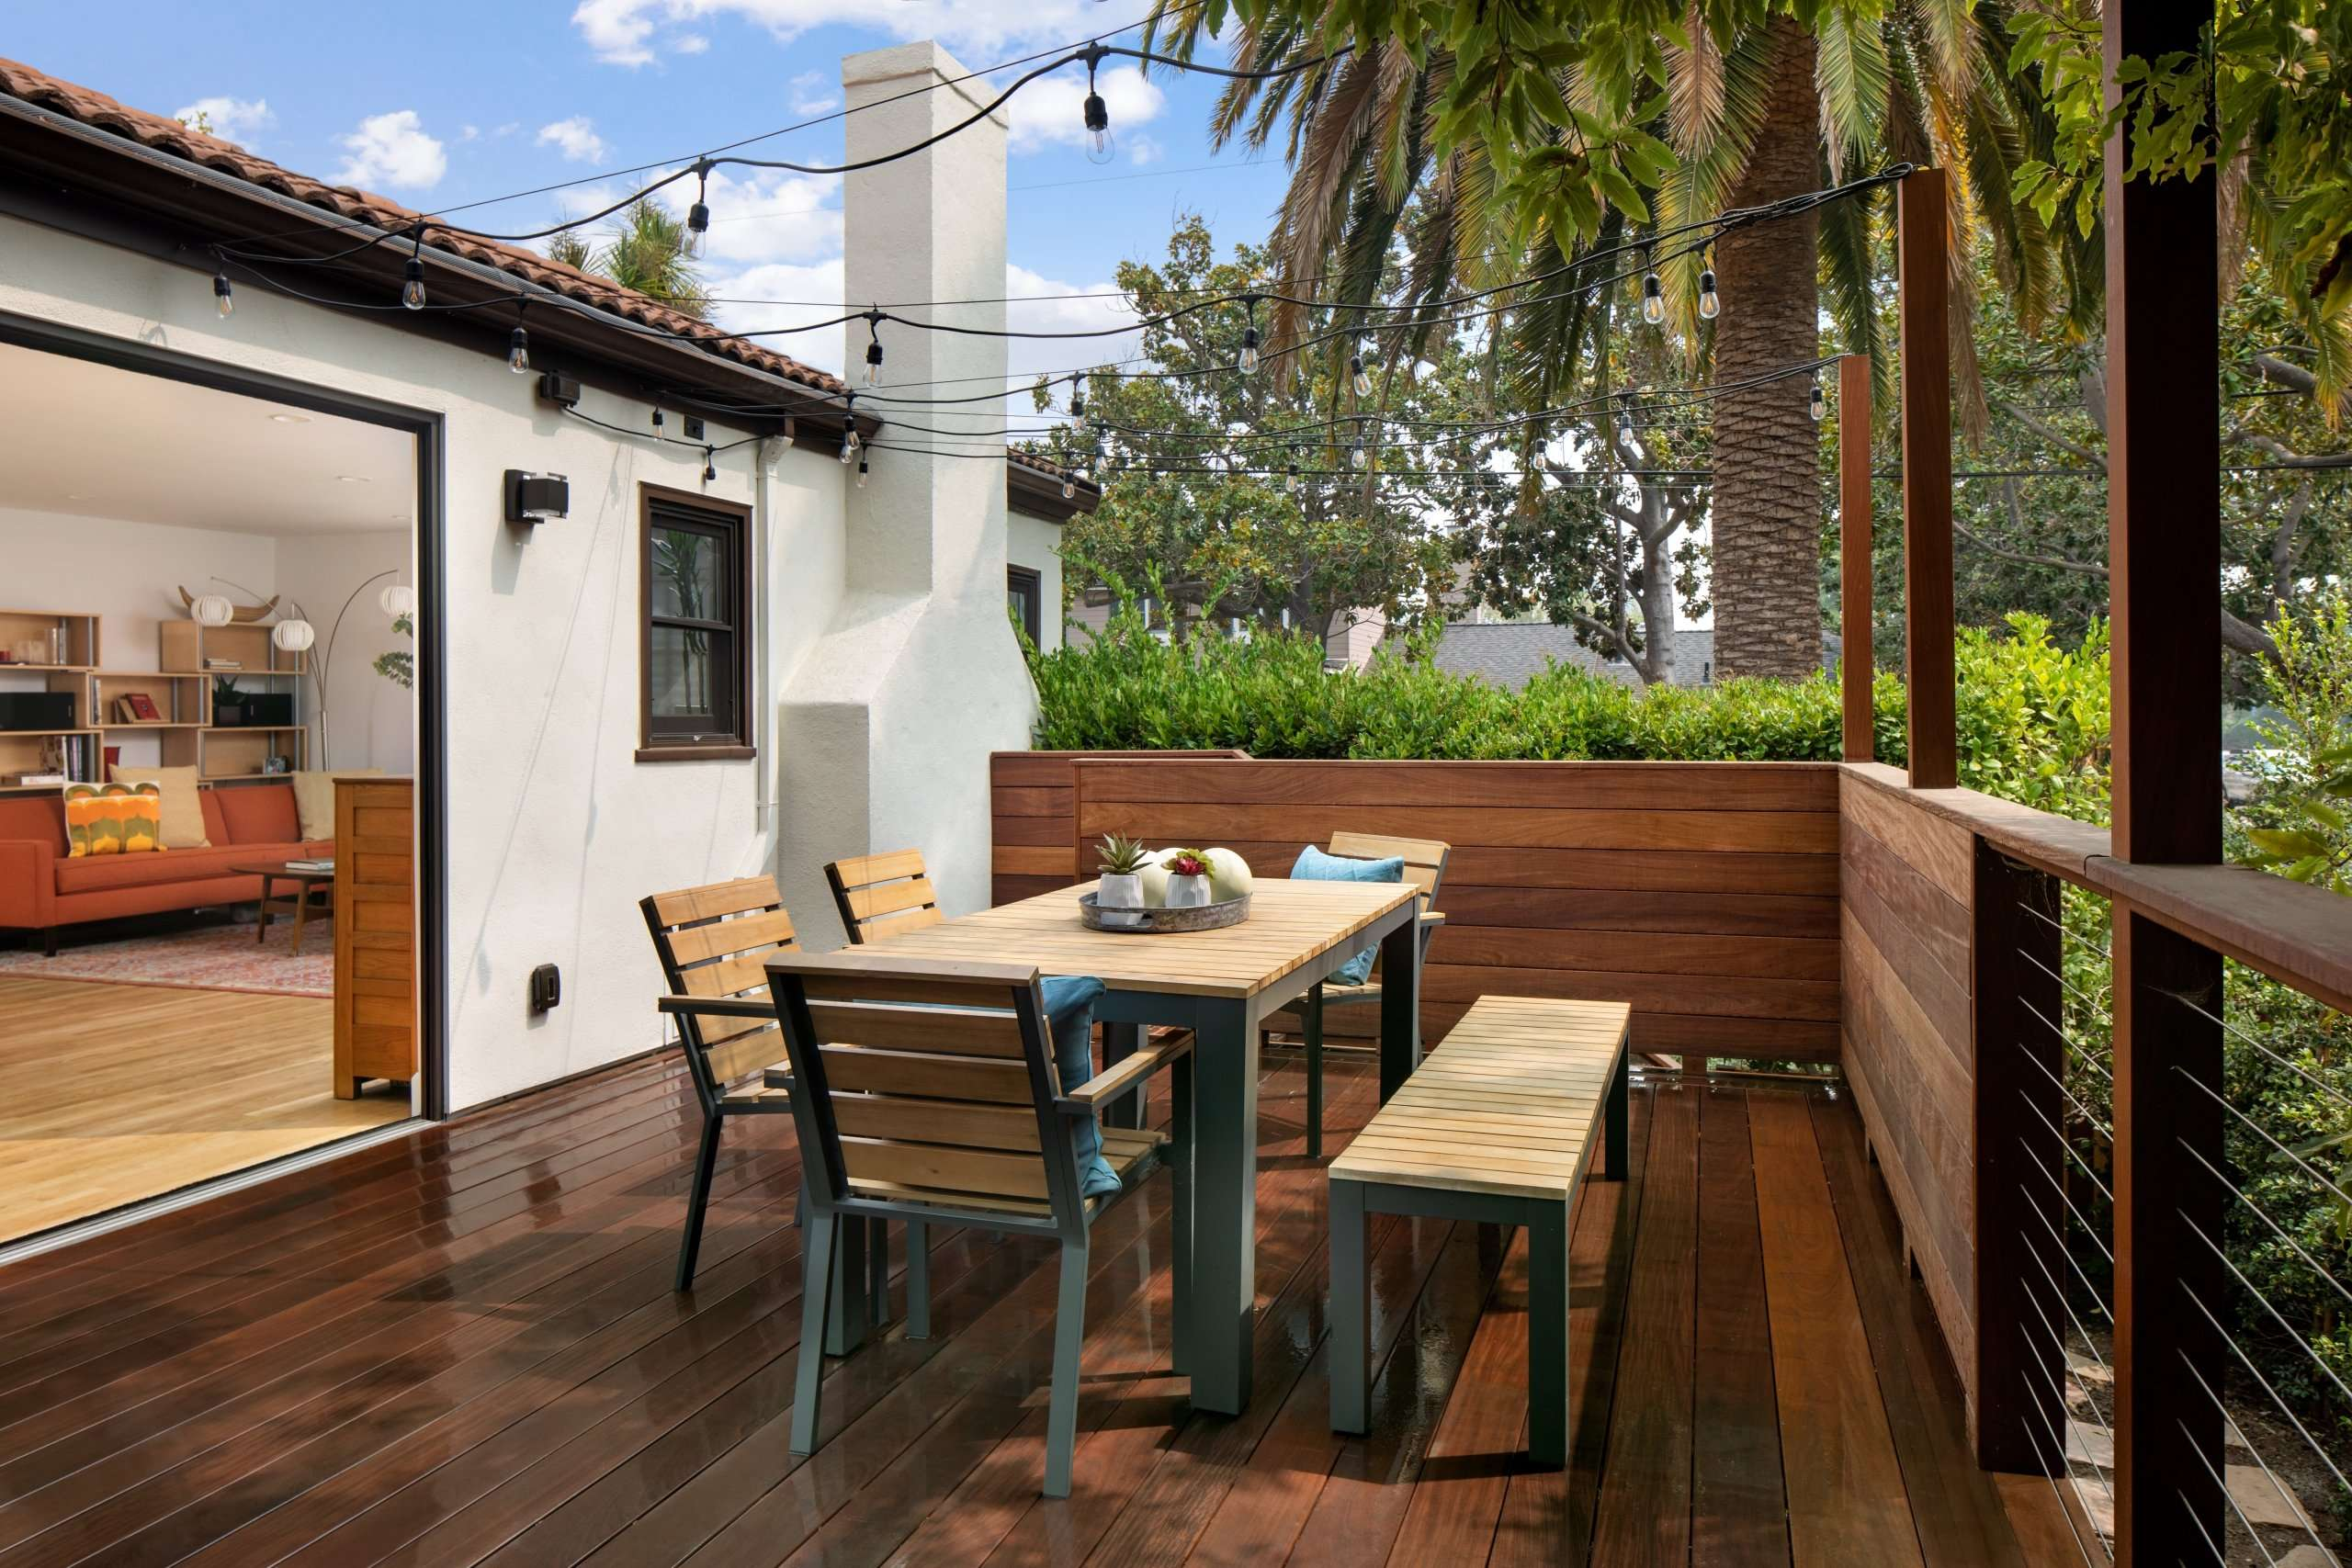 Beautiful outdoor dining table on wooden deck